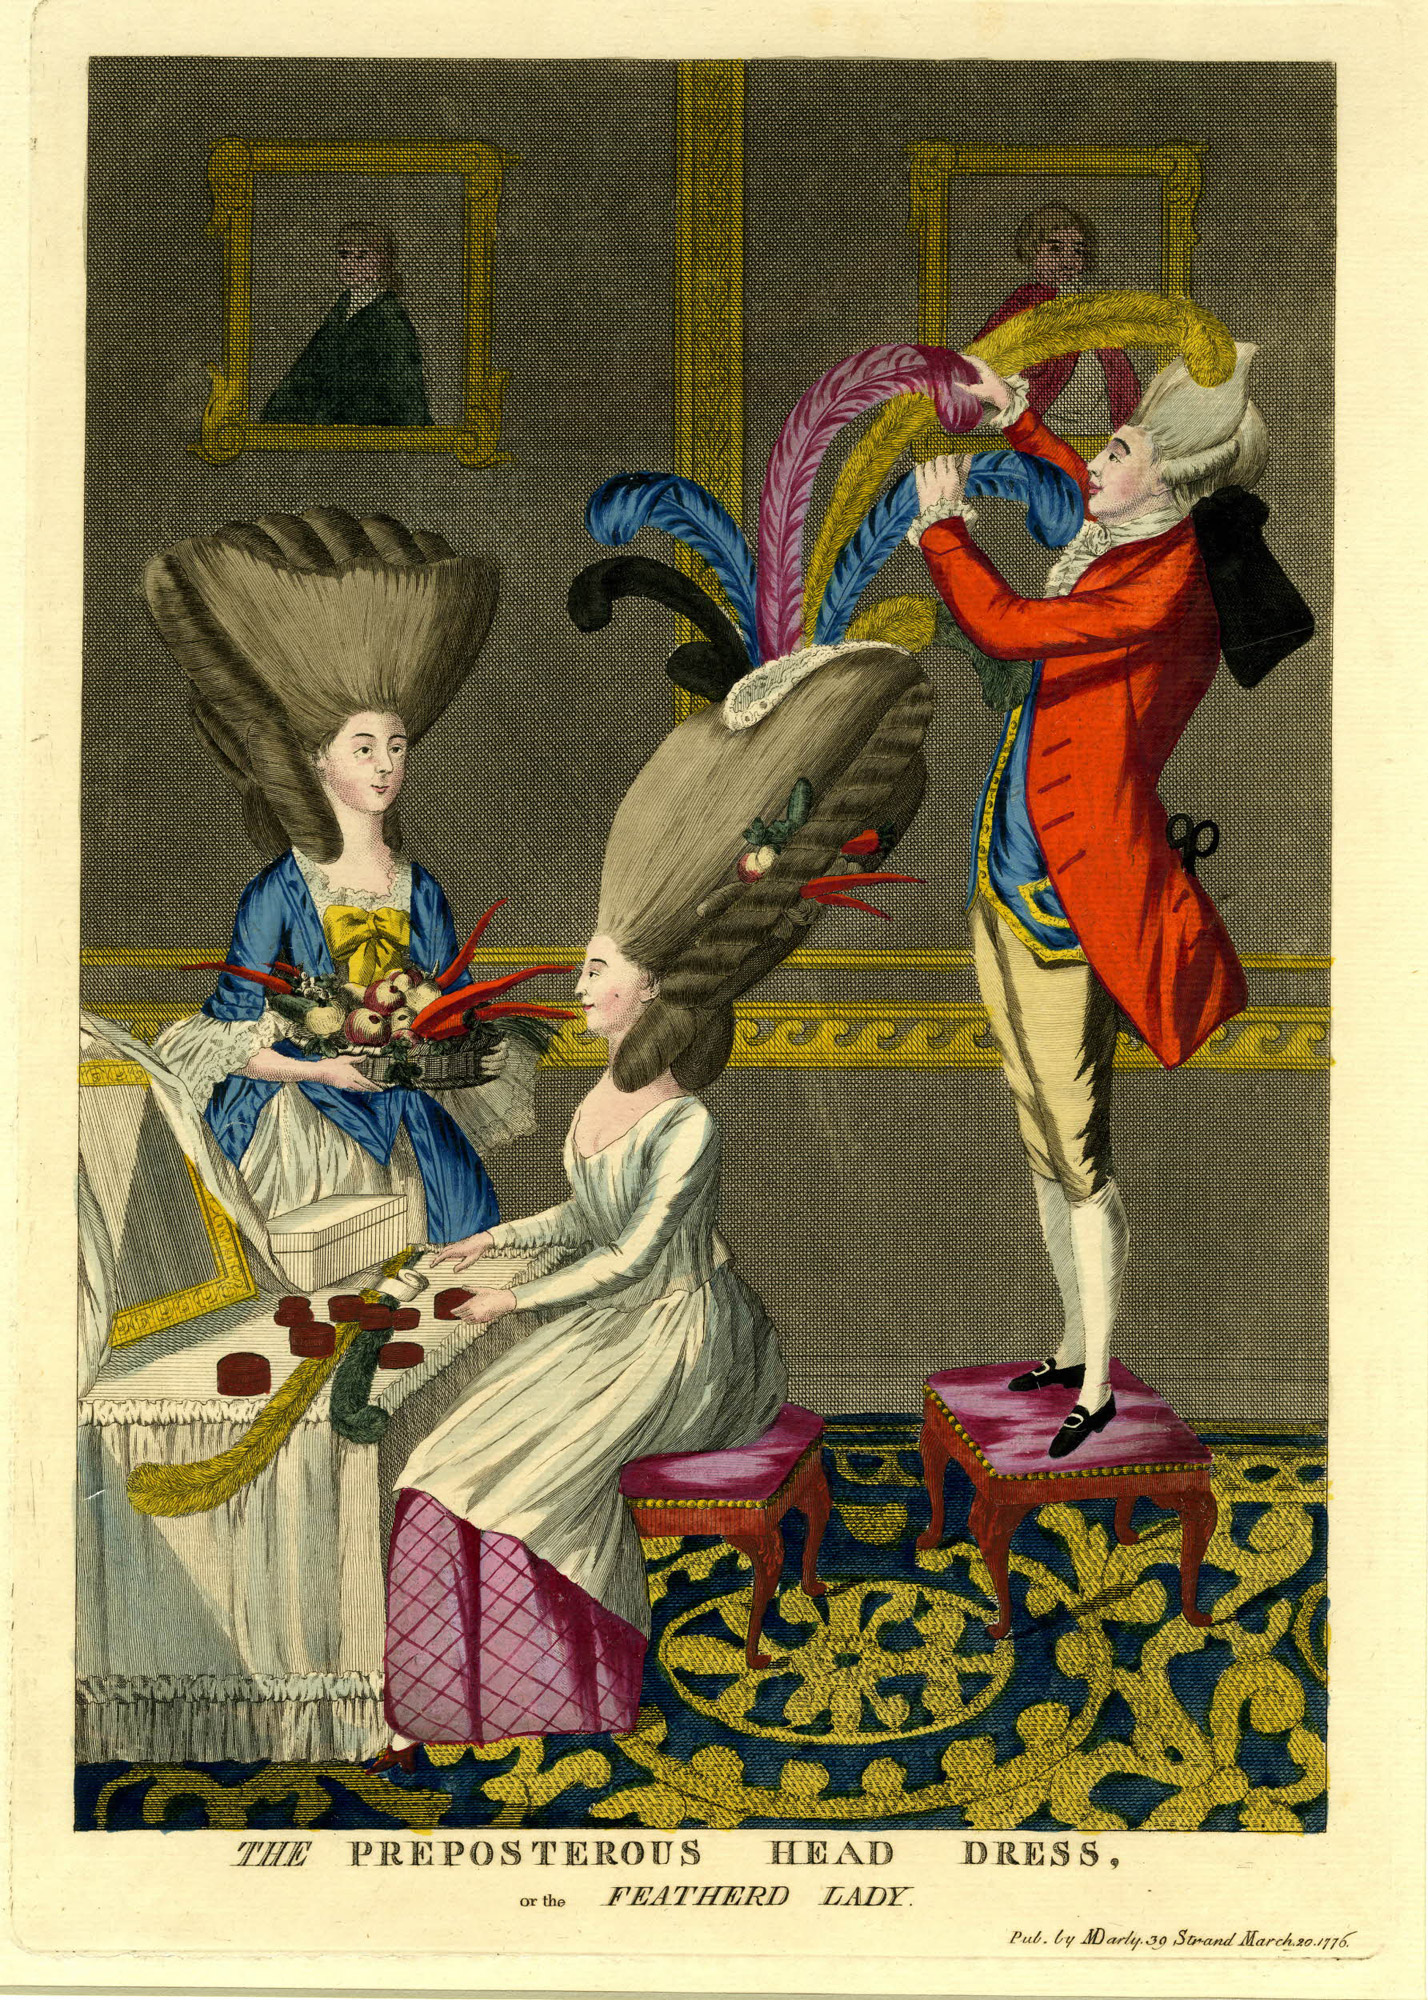 Satirical prints on fashion and hairstyles in the late 18th century